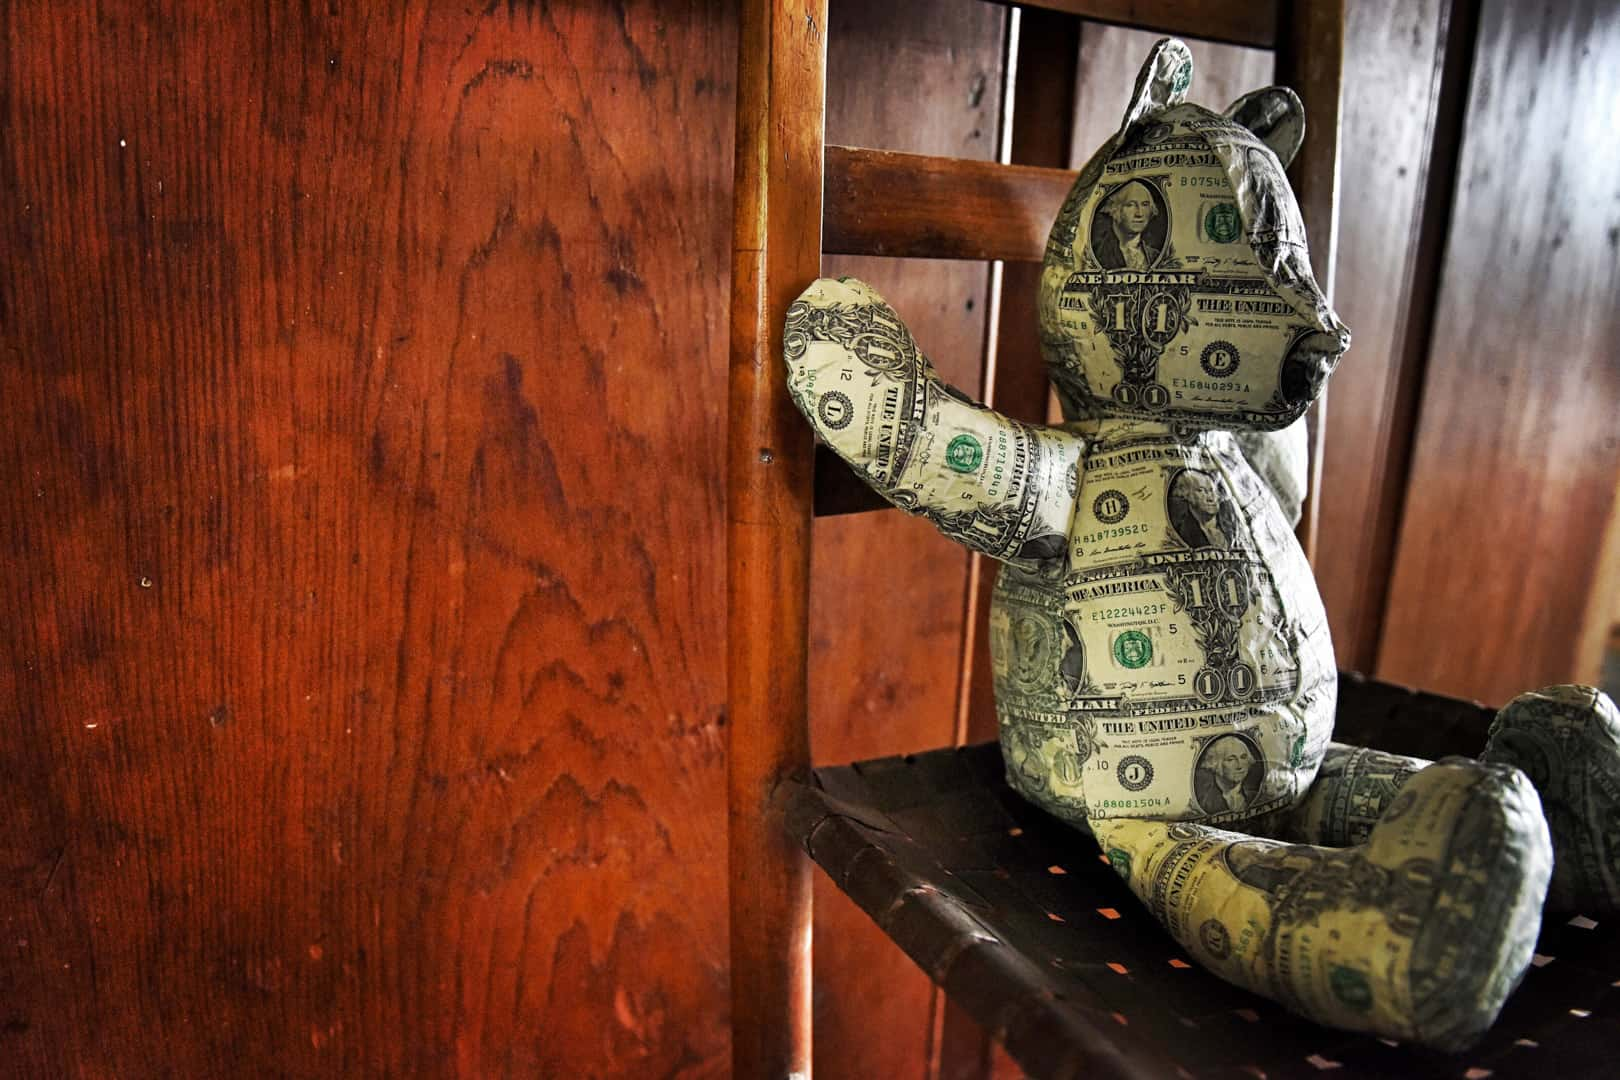 Johnny Swing's Dollar Bear, made of sewn dollar bills. Photo by Paul Specht